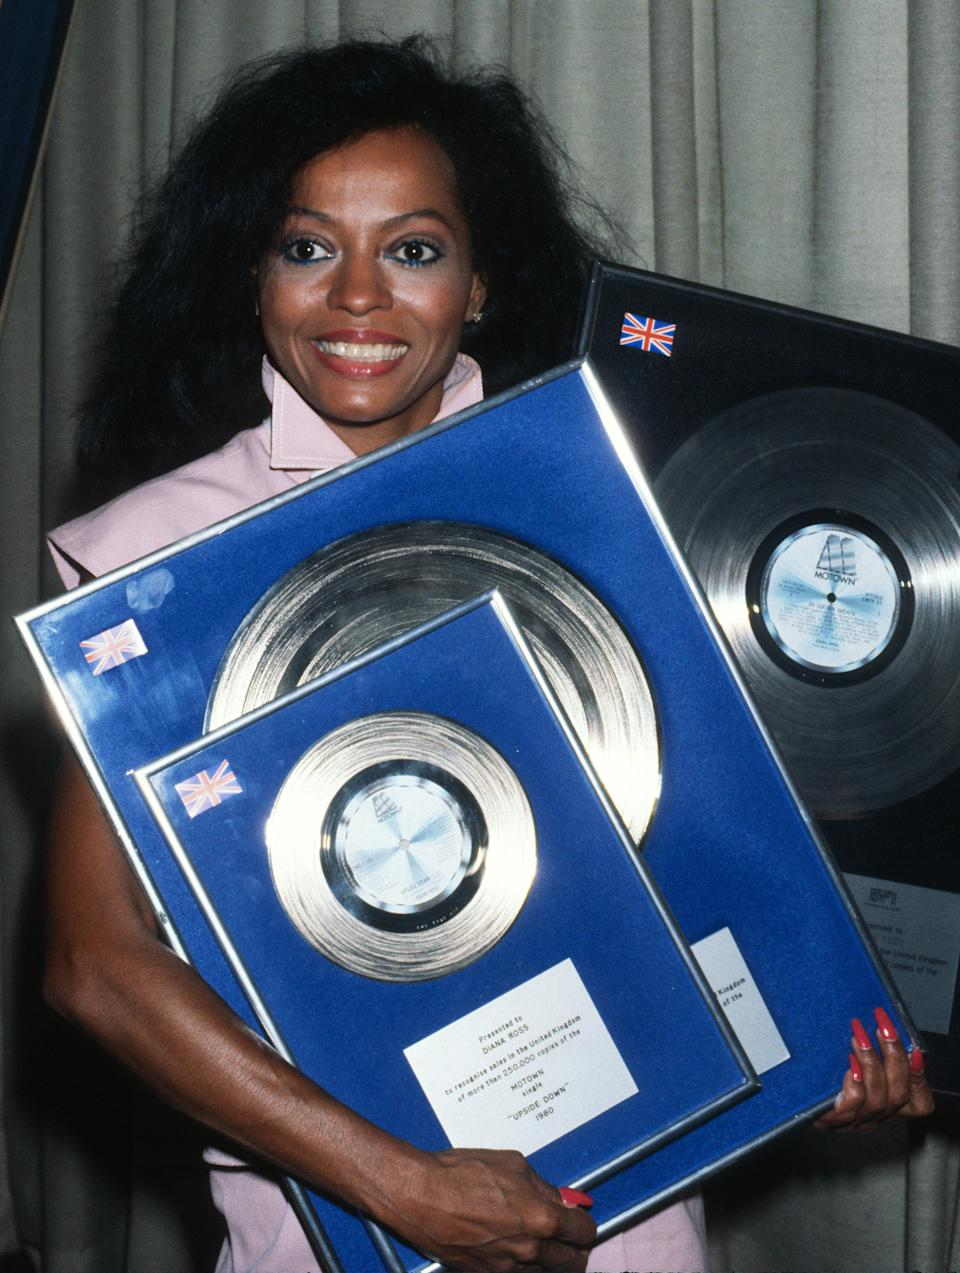 Diana Ross receives an award for the sale of her Motown single 'Upside Down' during a visit to England in 1980 in London, England. (Photo by Anwar Hussein/Getty Images)